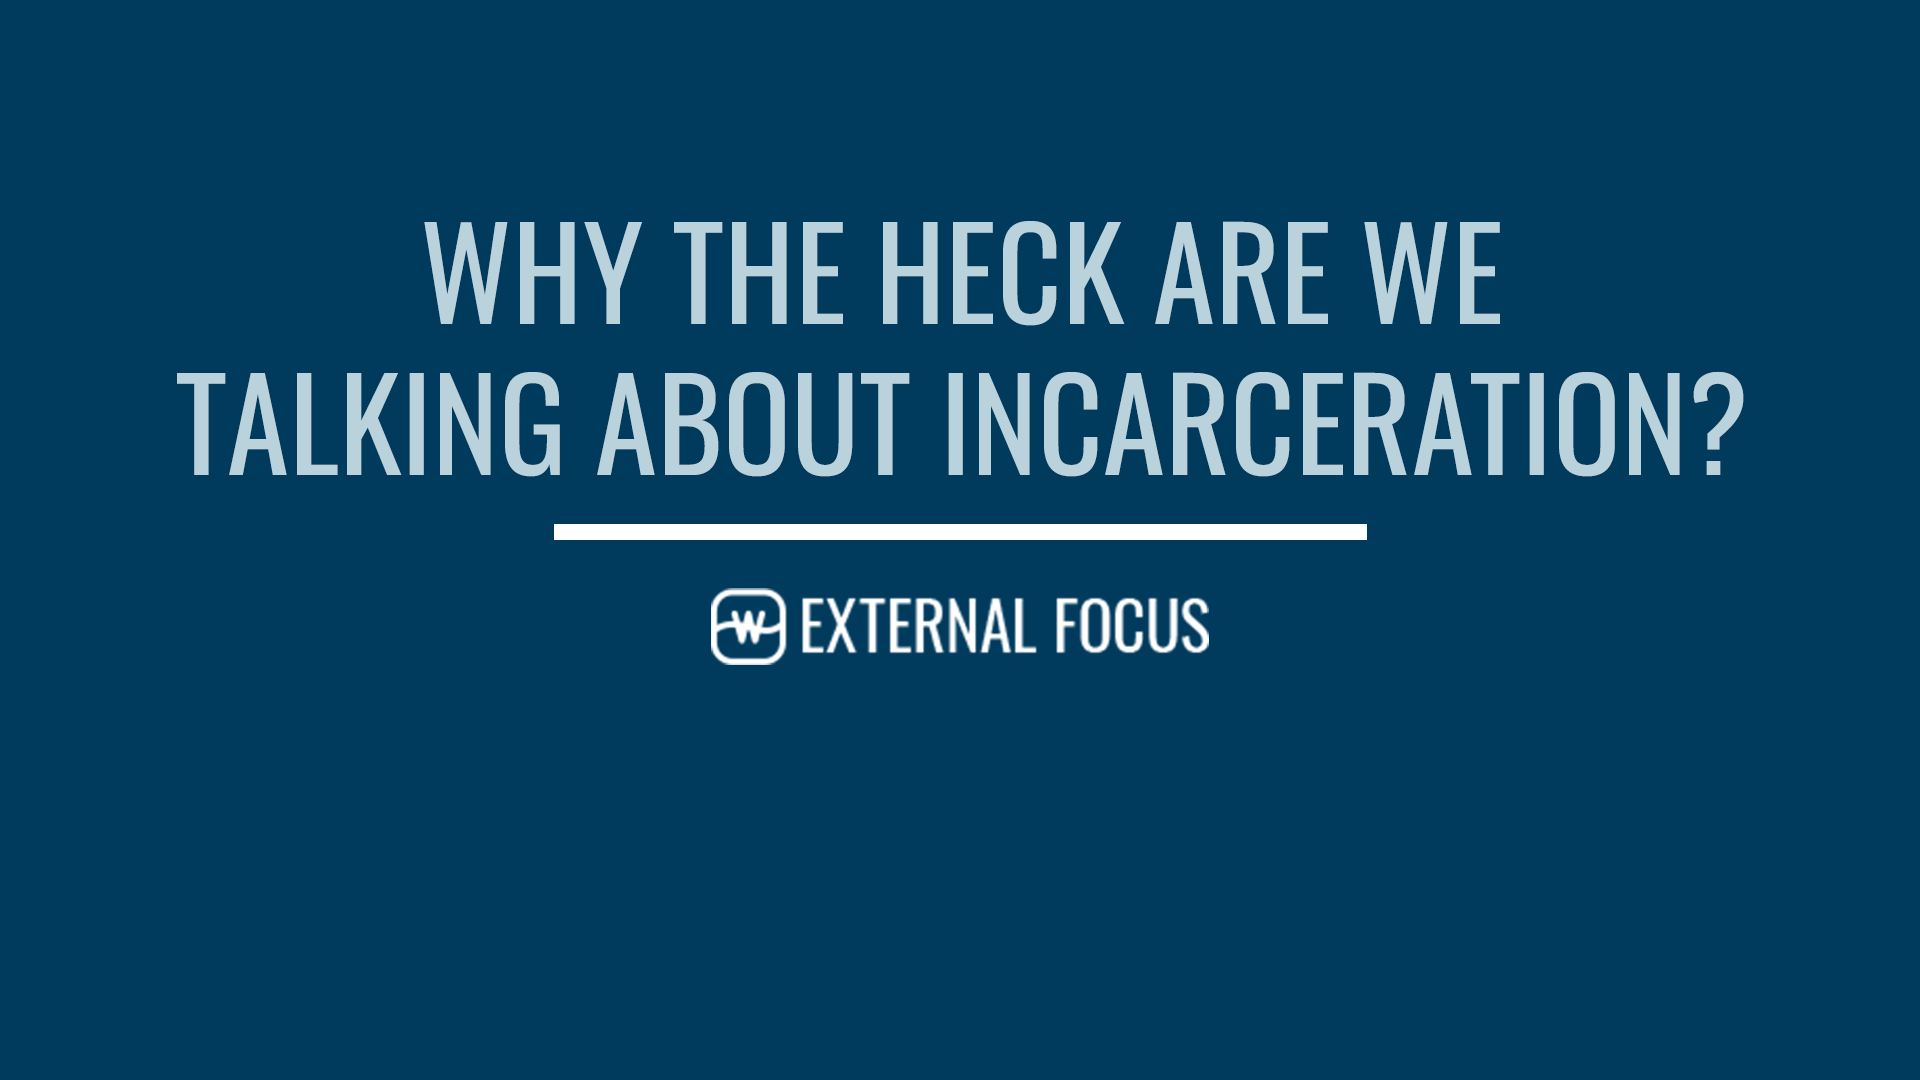 Why the Heck Are We Talking About Incarceration?